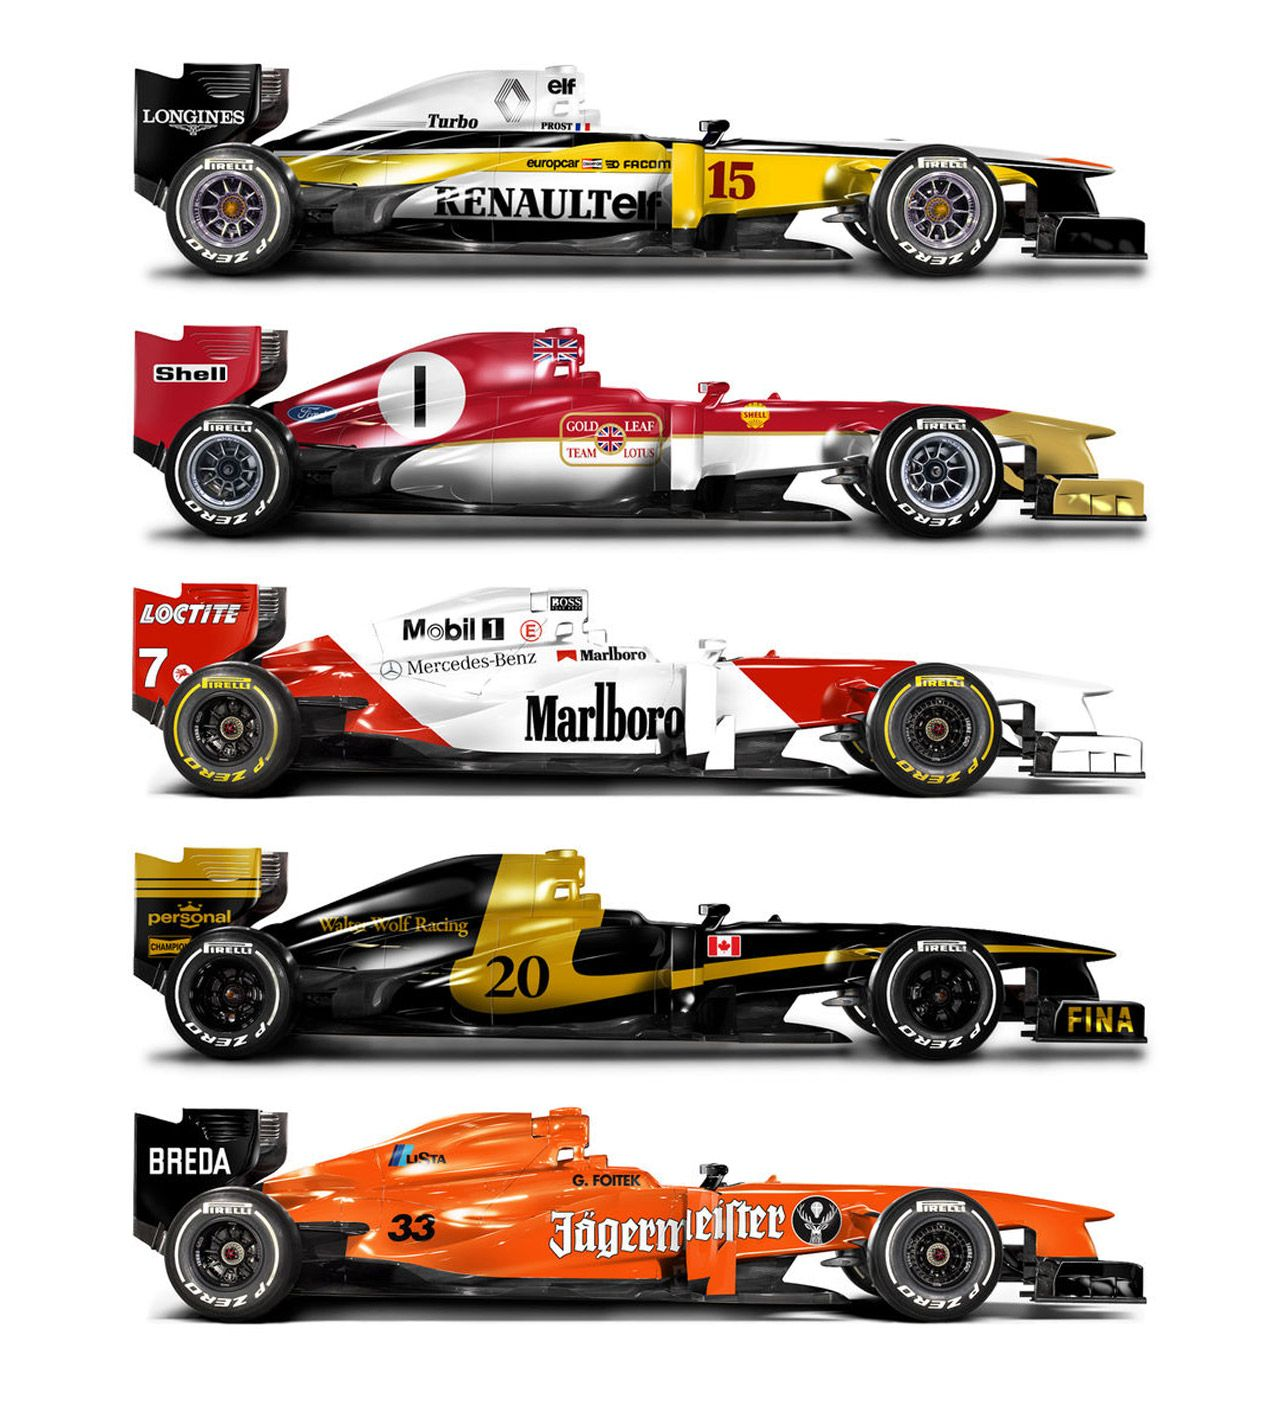 Classic F1 Liveries From The Past Applied To A Formula 1 Car Vintage Racing Vintage Race Car [ 1410 x 1280 Pixel ]